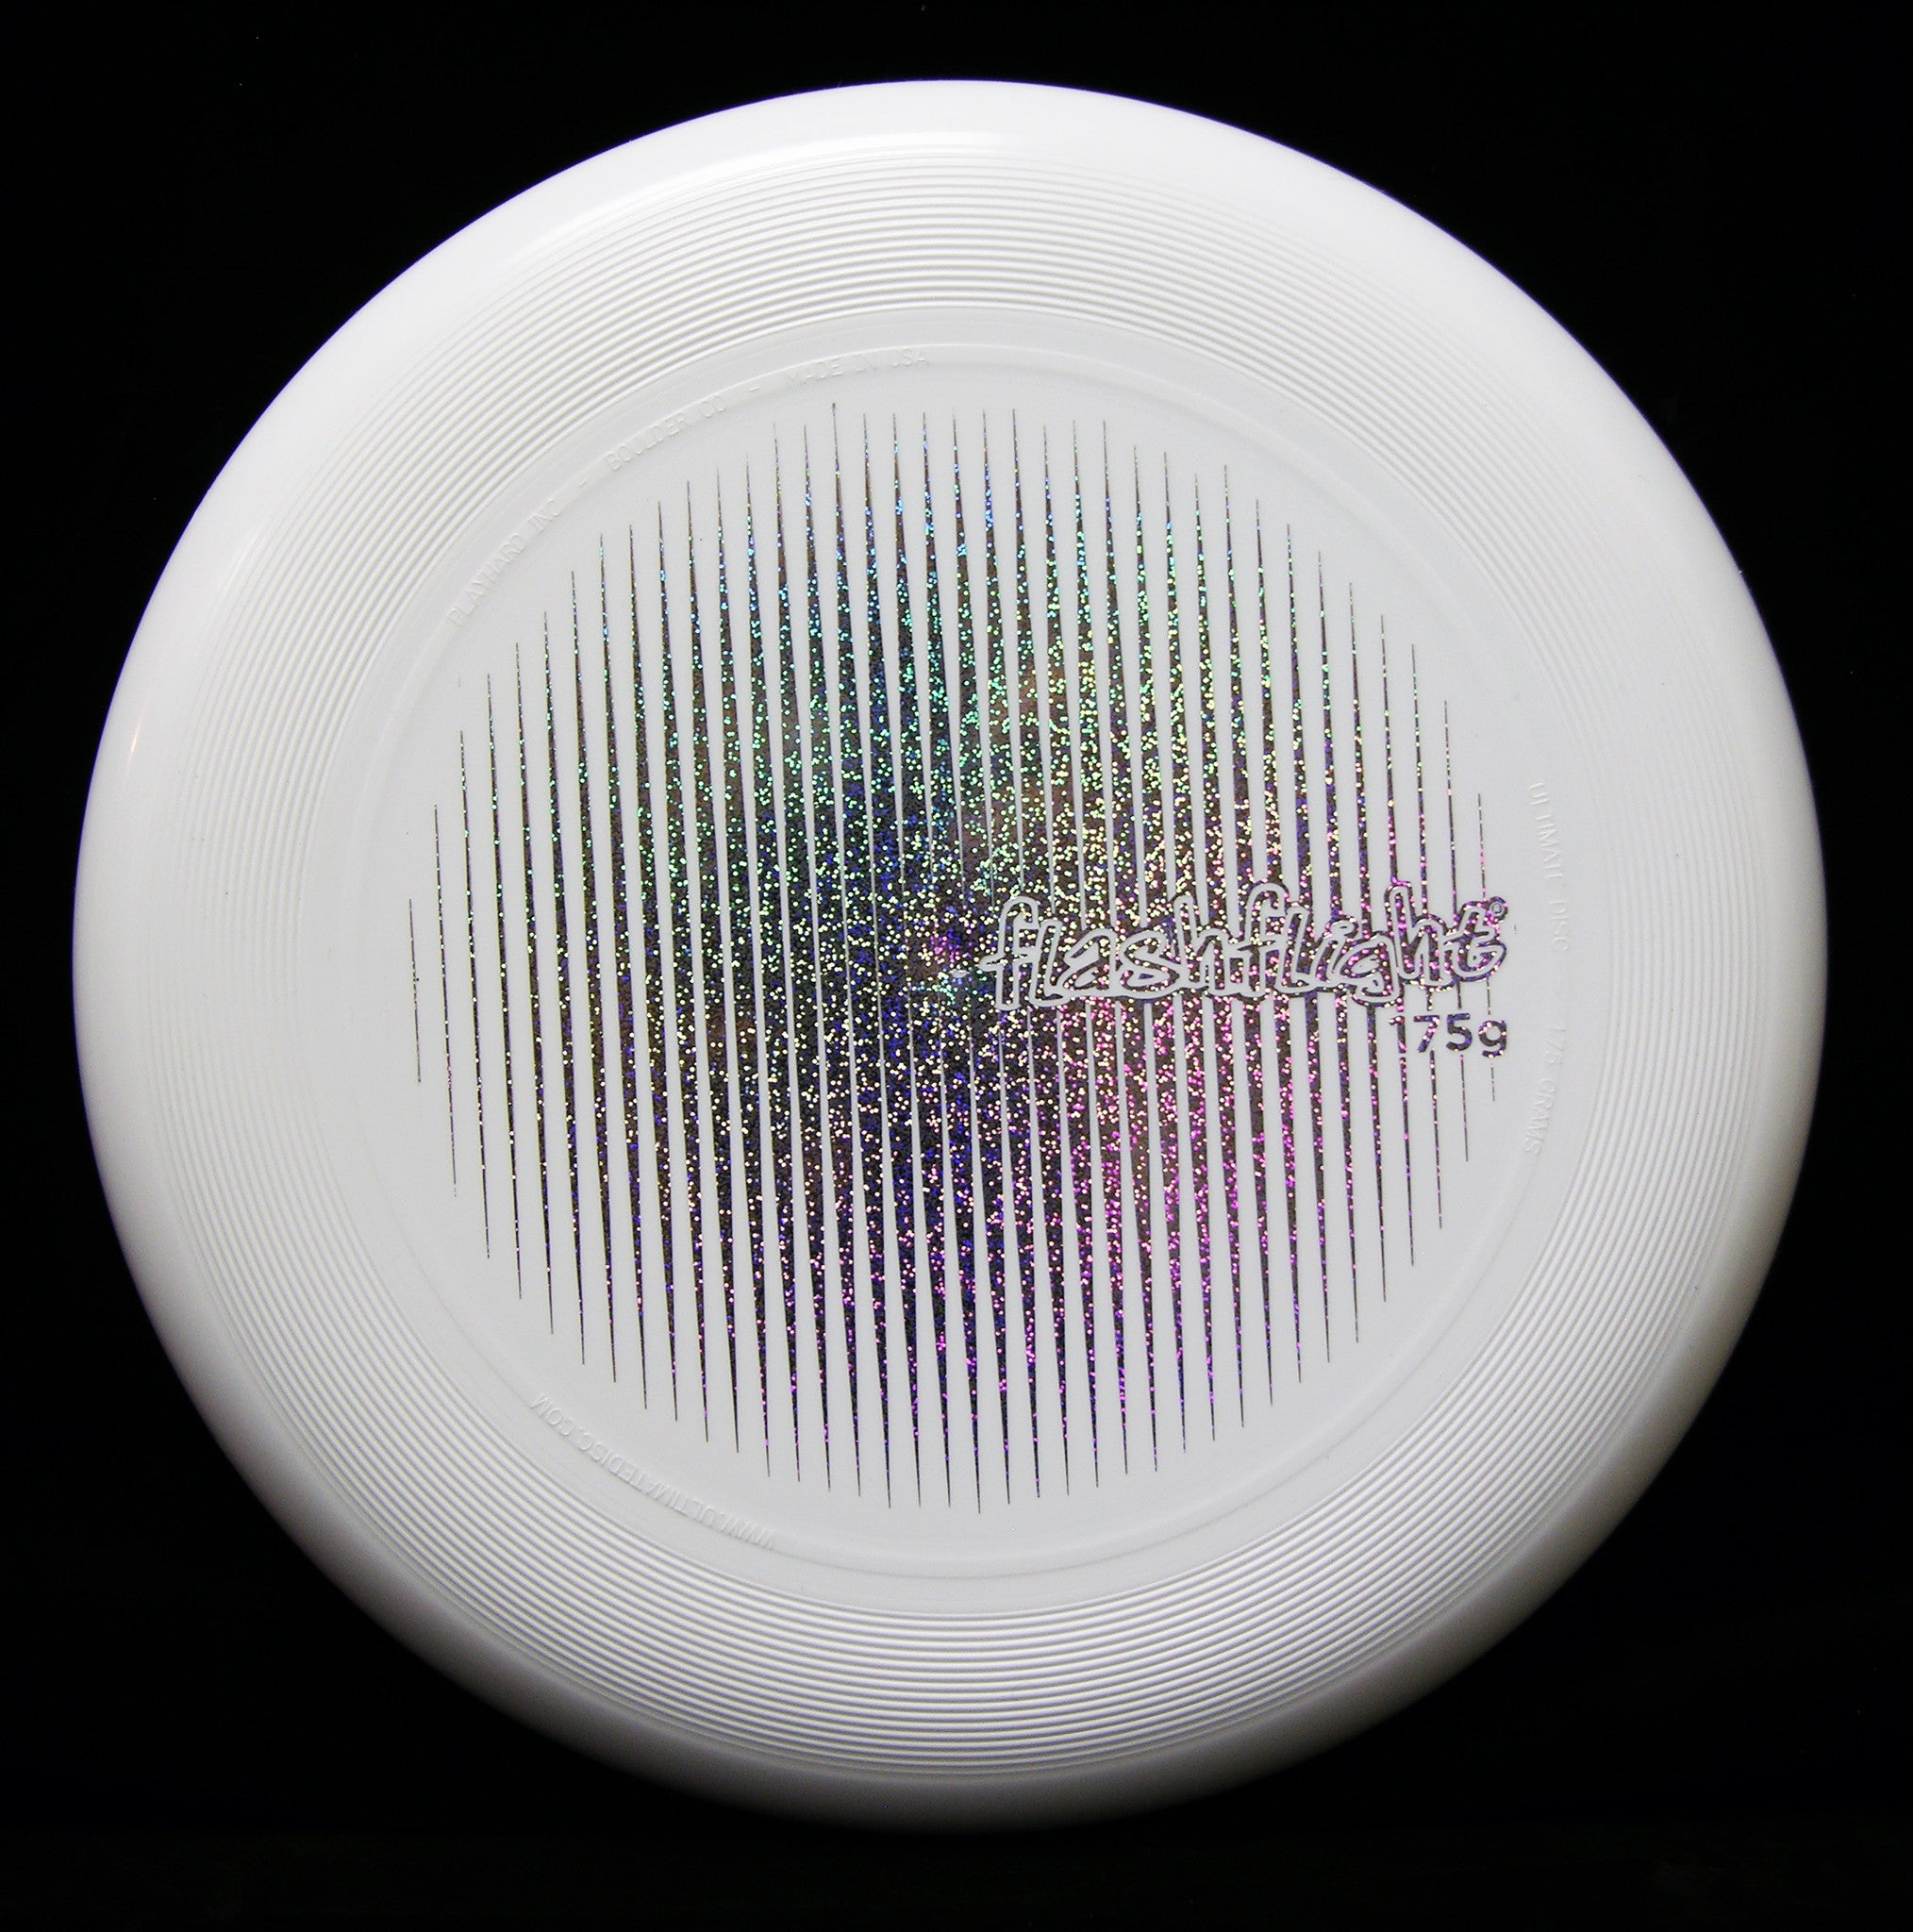 Ultimate Disc - Flashflight.com - 3